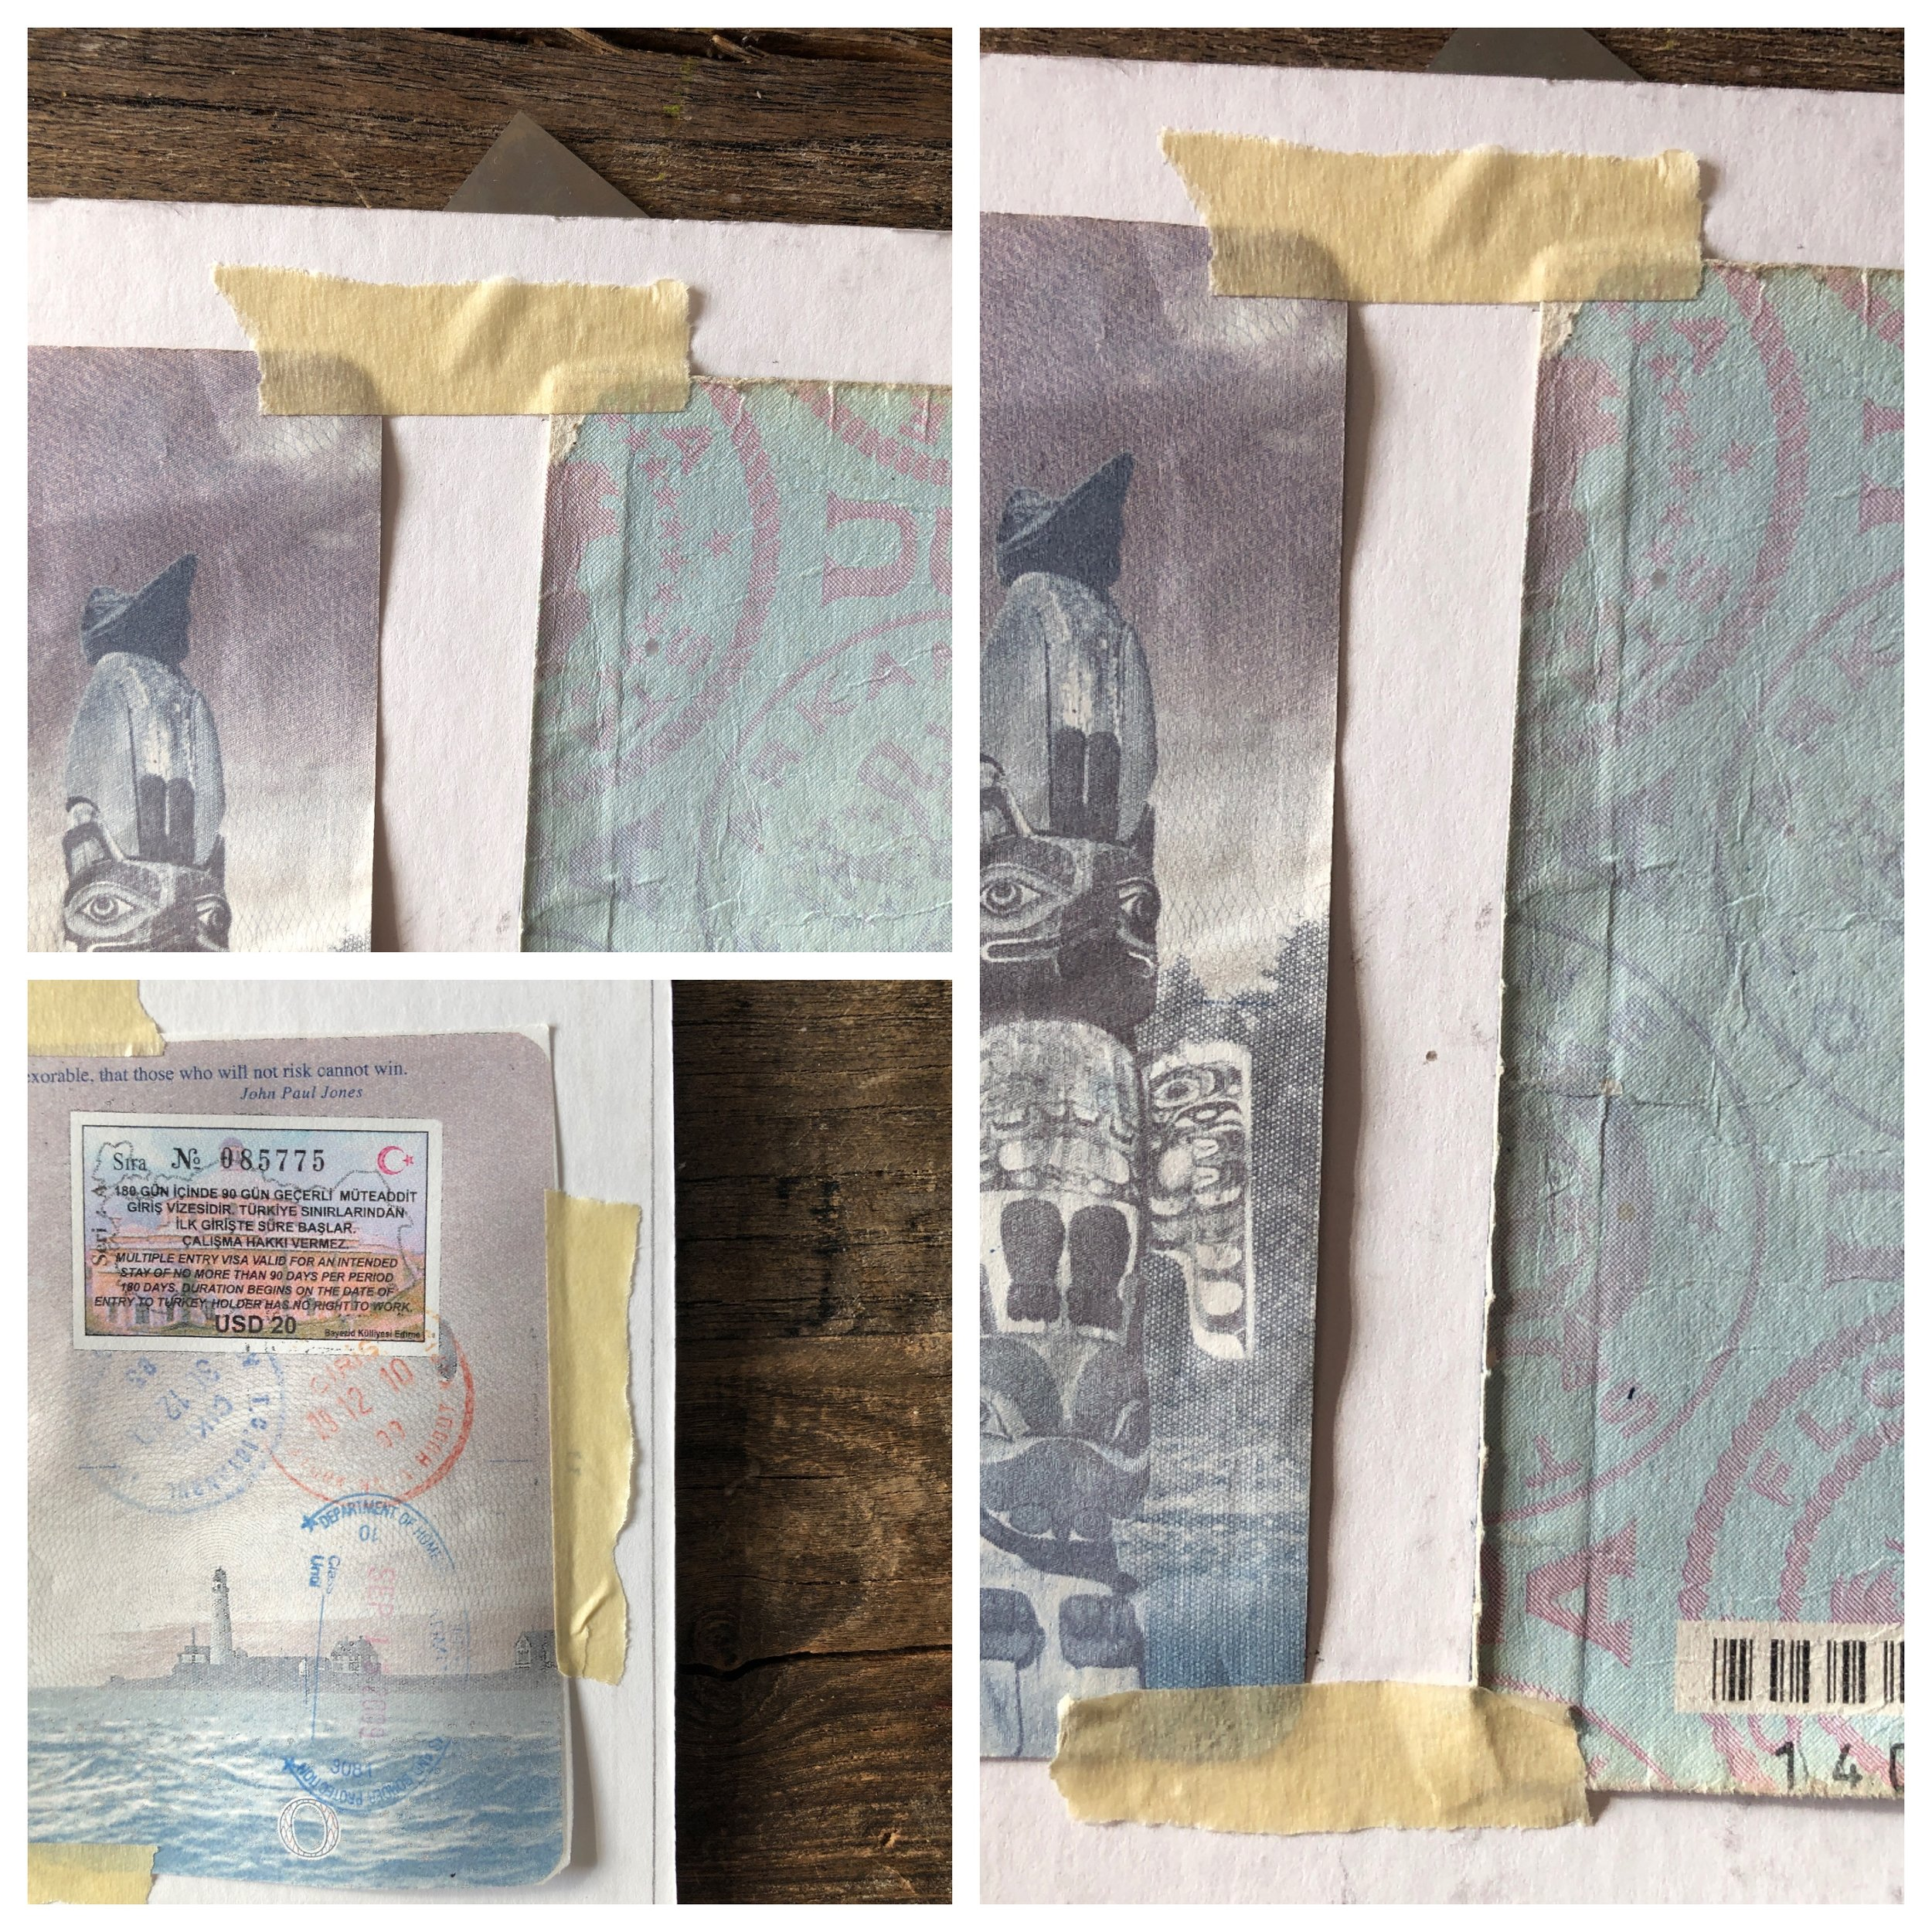 """Step 4   - Photo corners can be used to mount pages to mat board for a cleaner look. Masking tape is also sufficient and a bit cheaper. If using photo corners, follow instructions on box to mount pages to board. Here we will be using tape to adhere pages to mat board.  - For tape use, tear off piece appx 1"""" long and tear this piece down the middle making two thinner strips. Take one piece and place along the very outside edge of page securing it to the board. Keep in mind tape may be visible once other board goes on. So every now and then take the second mat board and place it on top of pages to see if tape needs adjusting so that it is not visible.  -Follow these instructions until all pages are adhered to board. (this may look a bit messy at this point, but none of this will be visible)"""